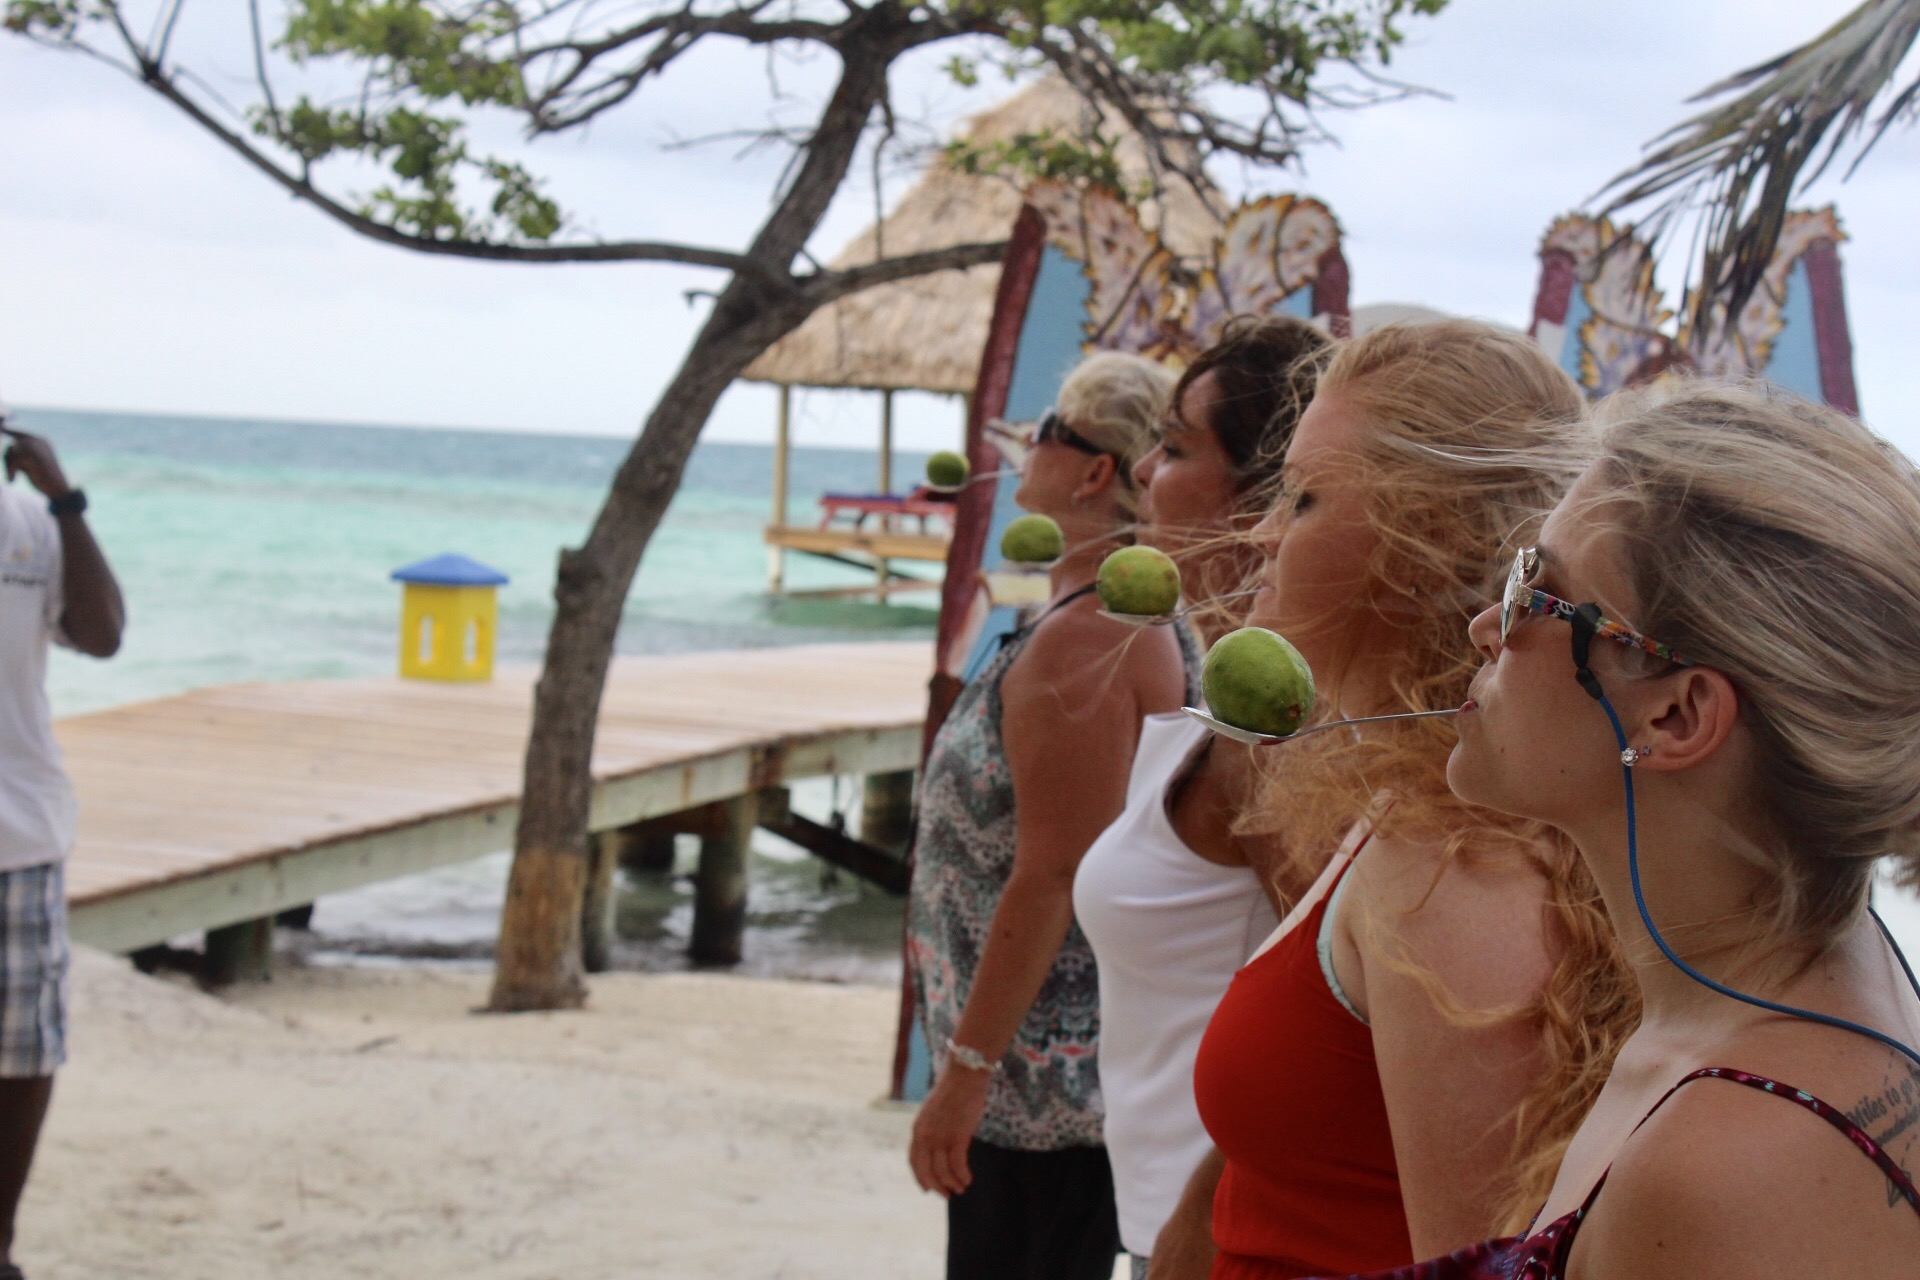 Contests and game at Coco Plum's second annual Lobster Fest!